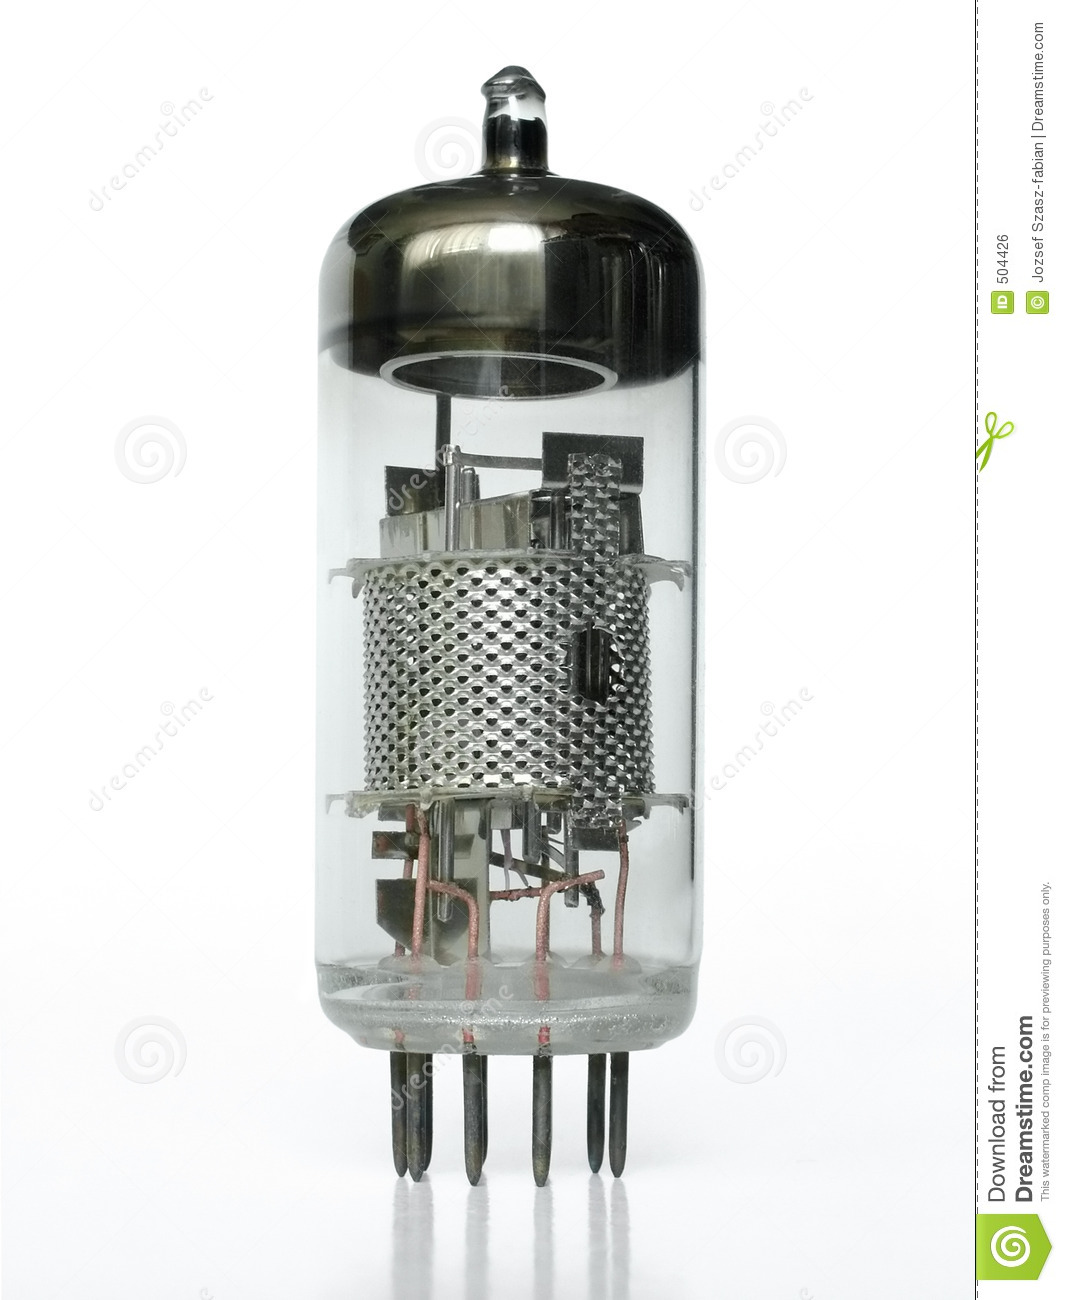 also 1957 Chevy additionally Yaesu Ft 847 also Royalty Free Stock Image Vacuum Tube Image504426 likewise Pilot blue peter A. on old radio tubes